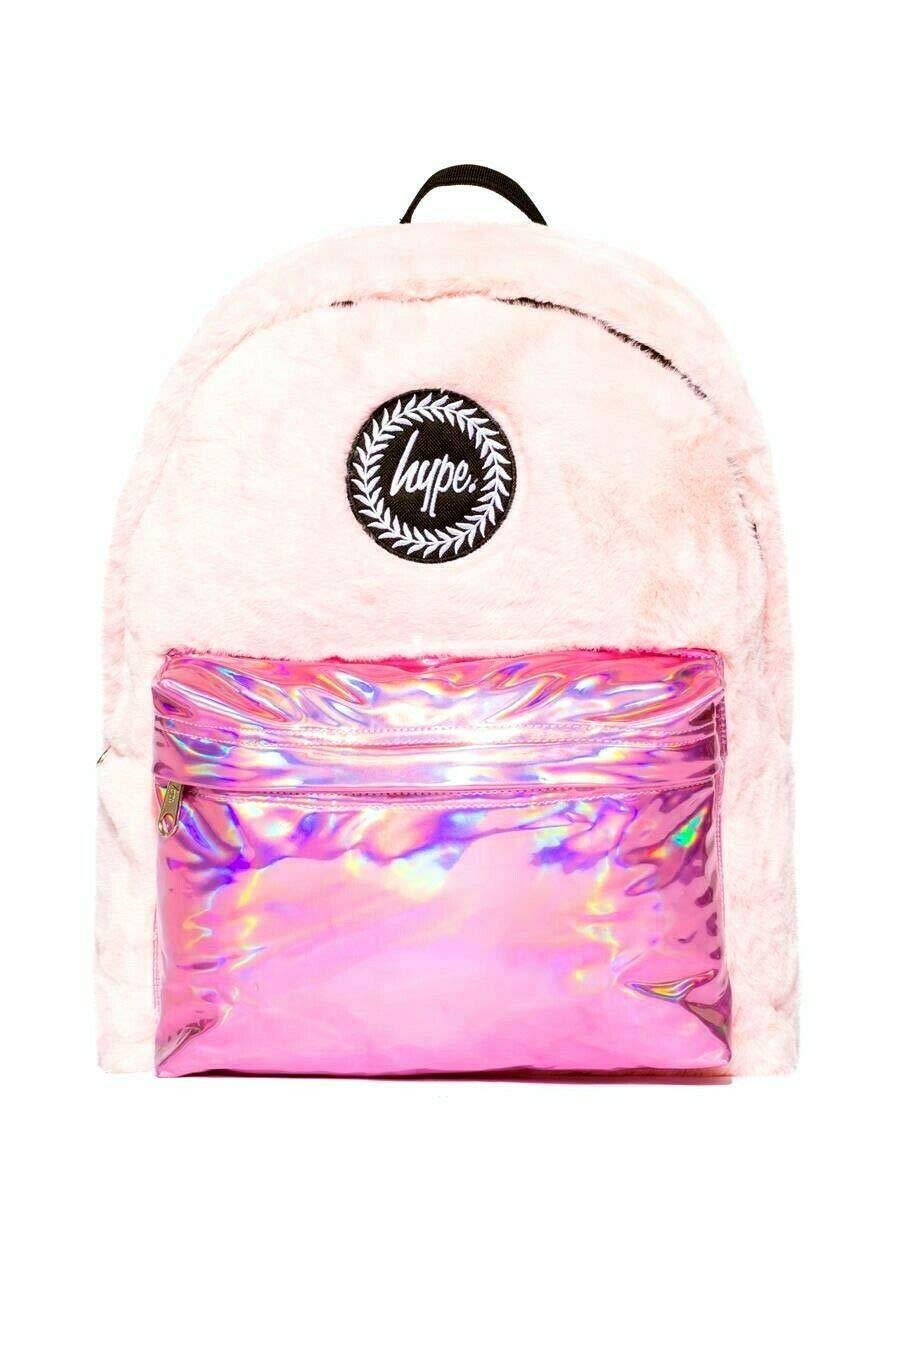 HYPE FUR HOLO POCKET BACKPACK RUCKSACK BAG - PINK